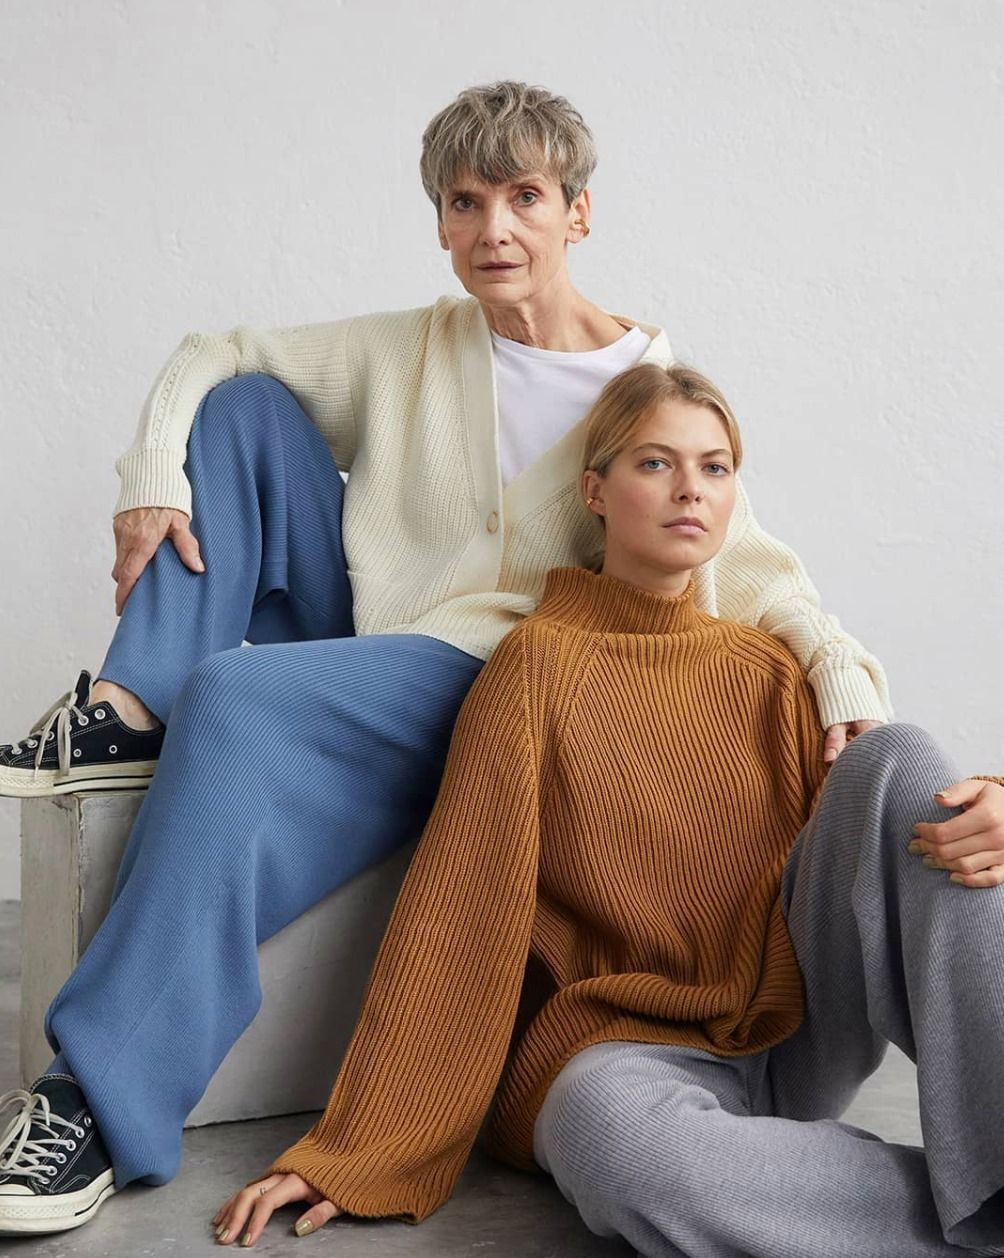 #FounderWednesdays Archive: Sustainable Knitwear by The Knotty Ones